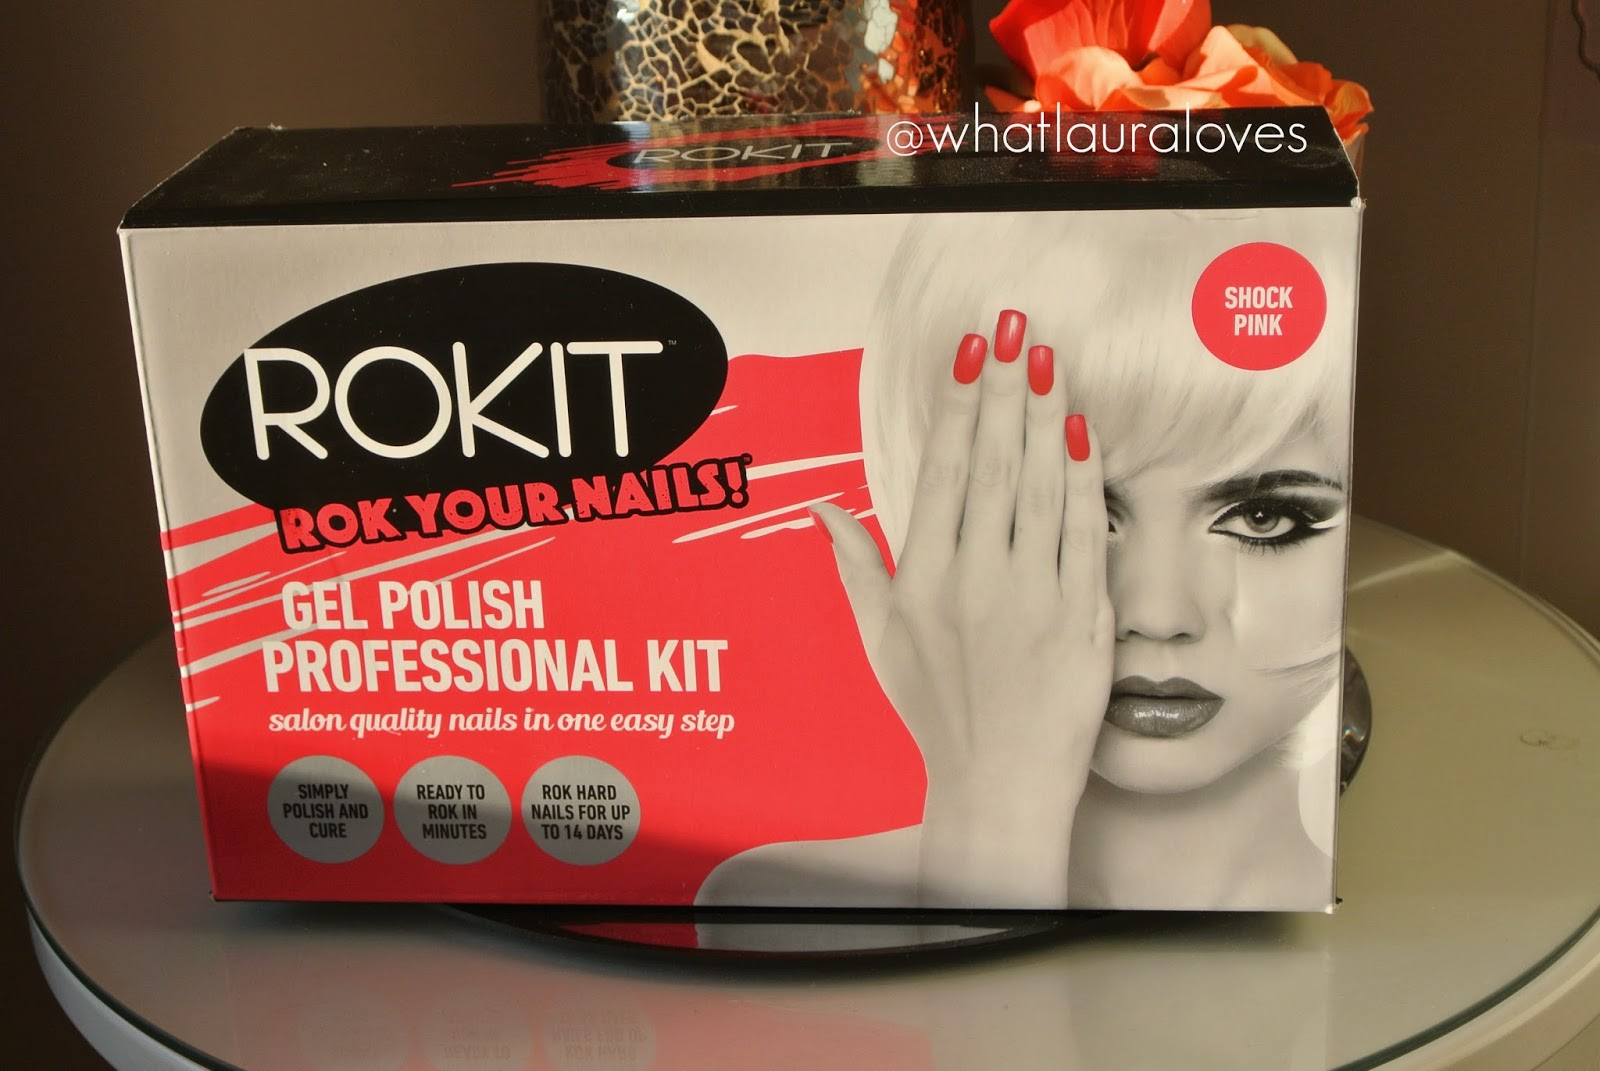 Rokit Gel Polish Professional Kit